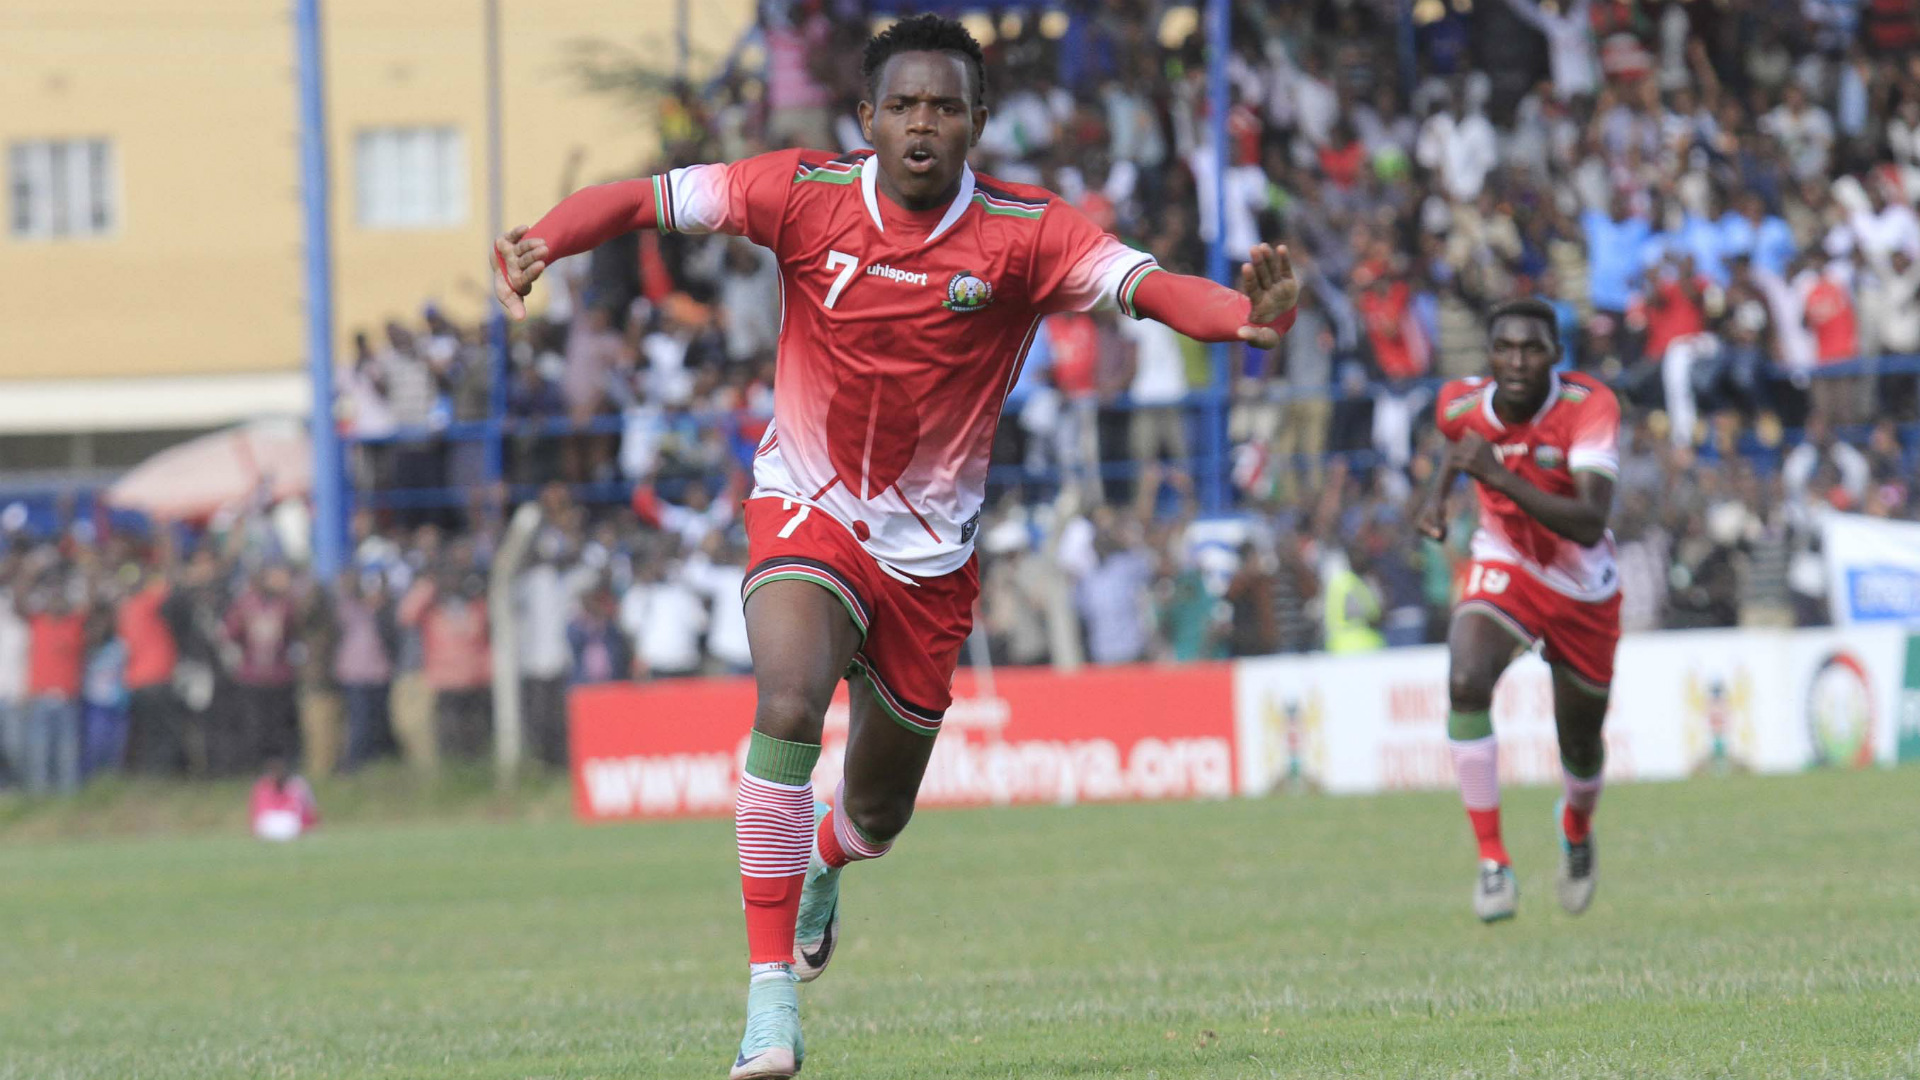 https://images.performgroup.com/di/library/GOAL/56/b7/ovella-ochieng-of-harambee-stars_8ll91z7mhmhc1u3h3w9db8sy2.jpg